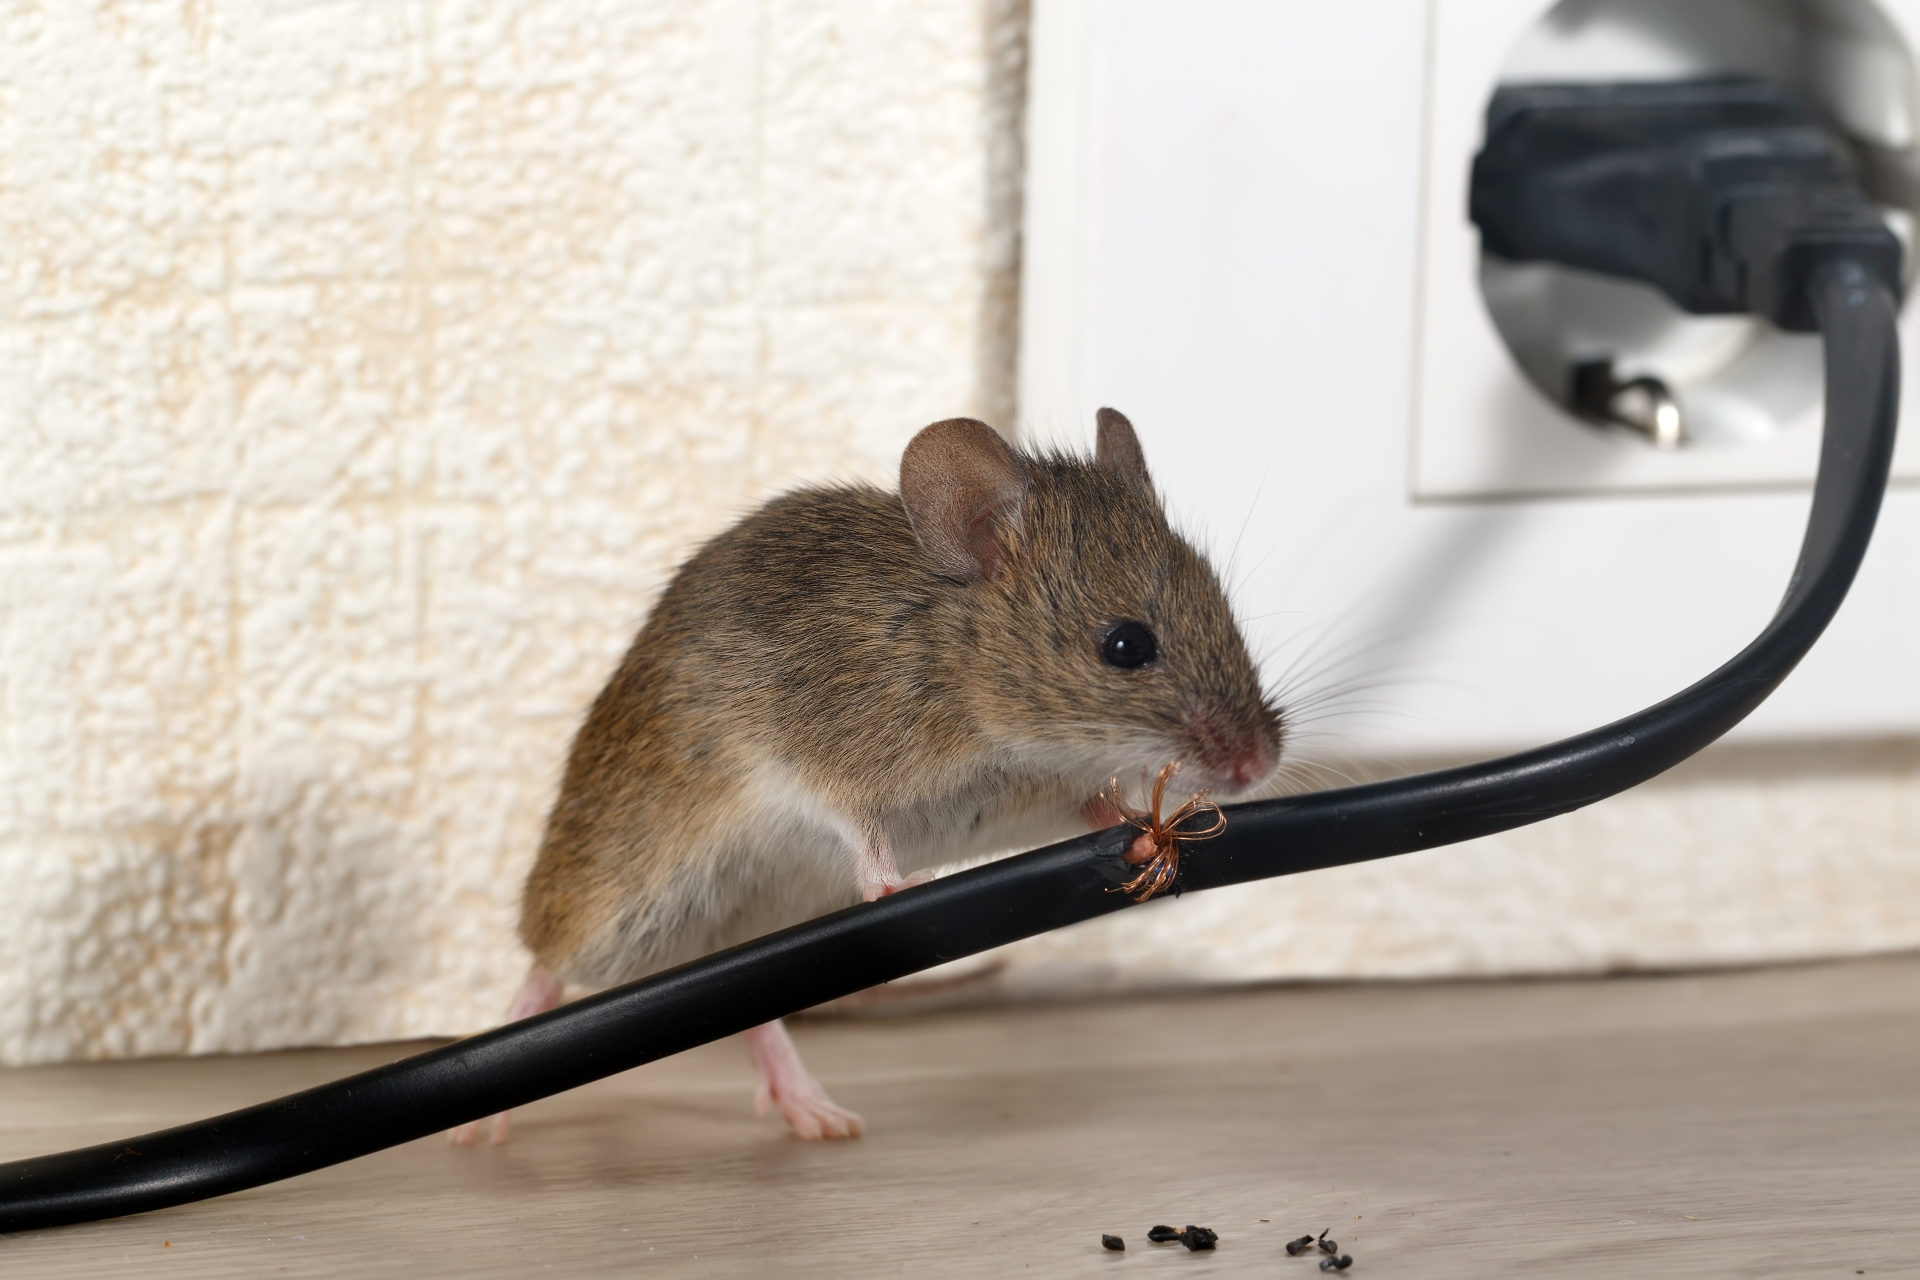 Mice Infestation, Pest Control in Norbury, SW16. Call Now 020 8166 9746